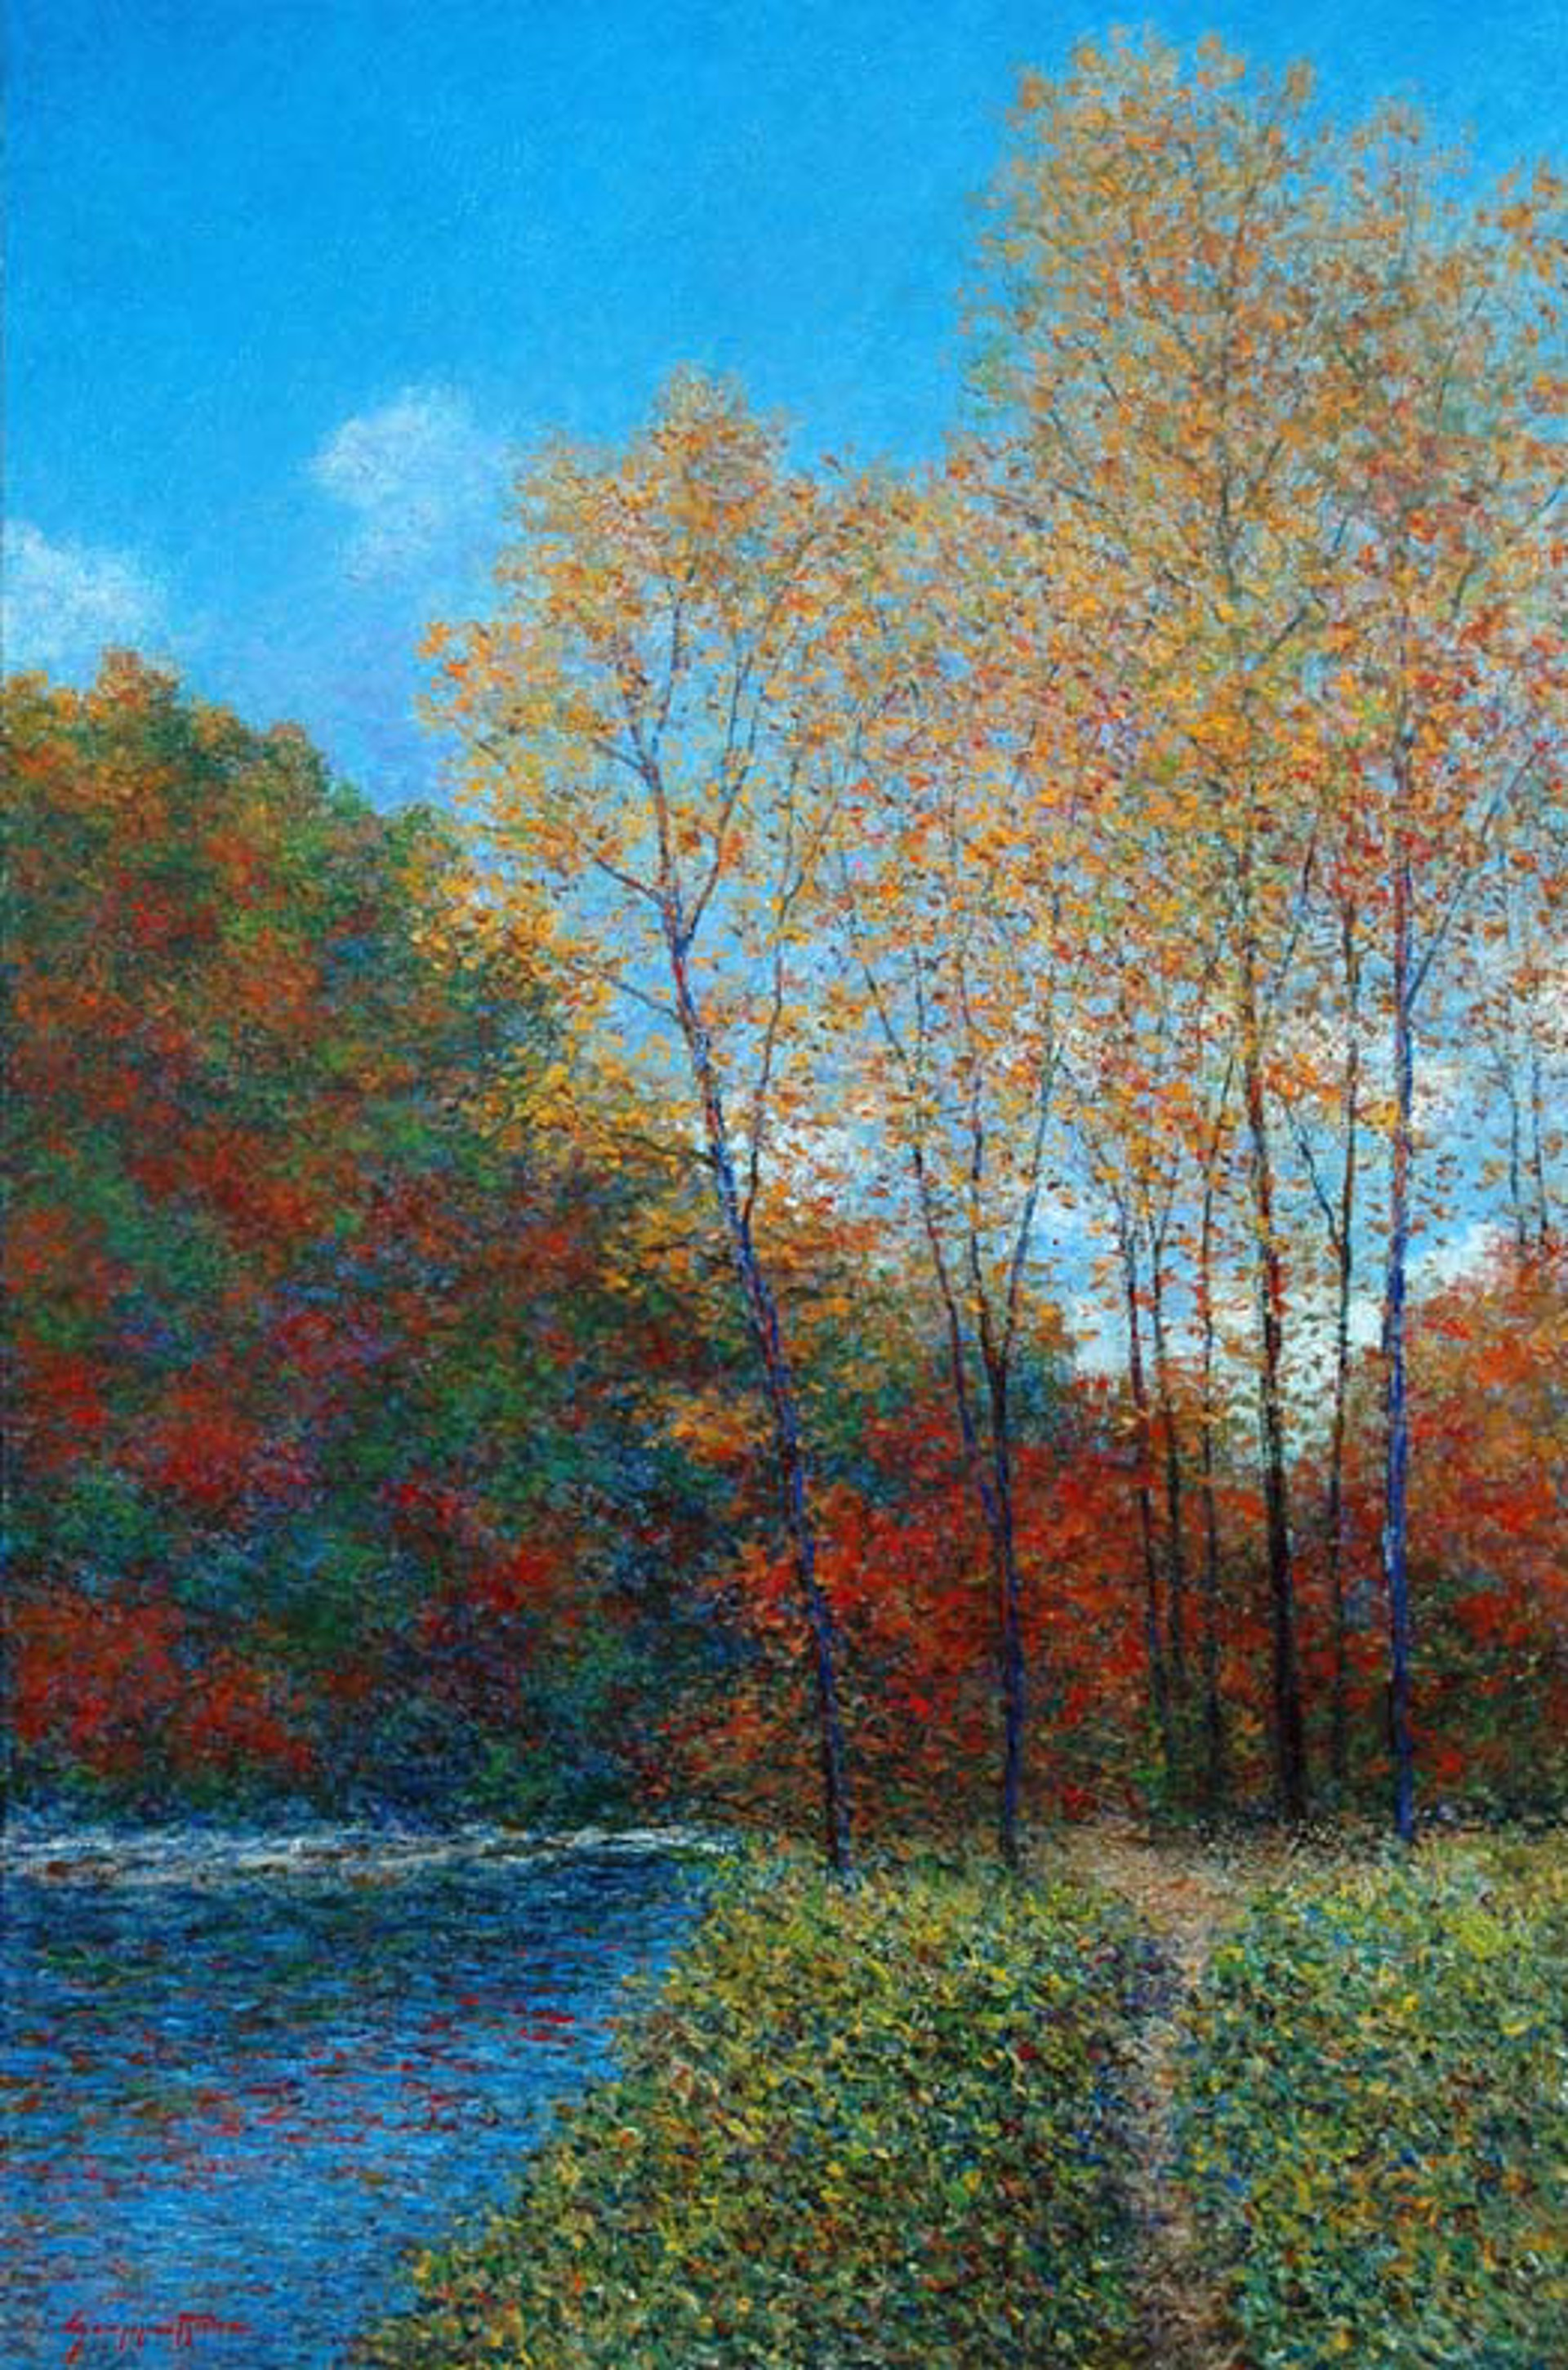 The River In Autumn by James Scoppettone